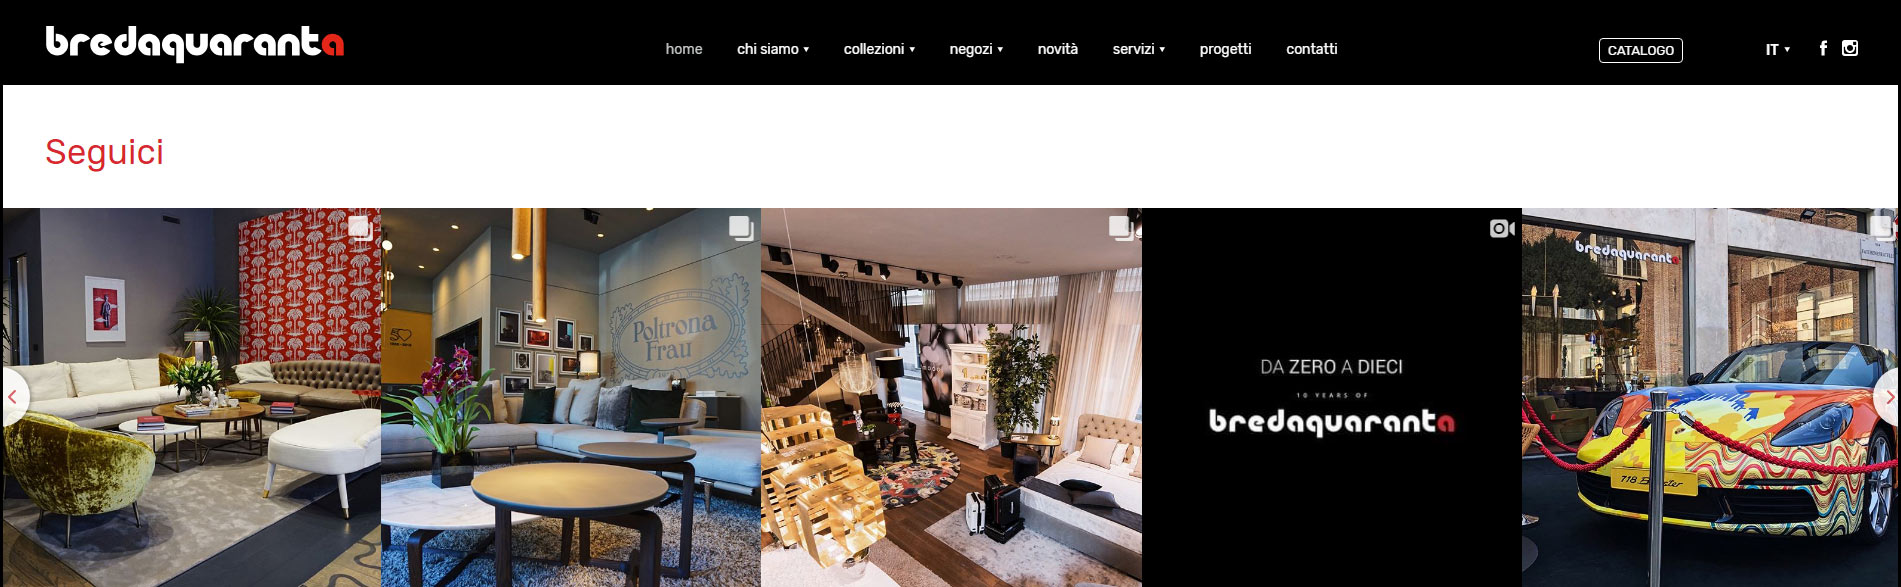 Bredaquaranta new website 2019